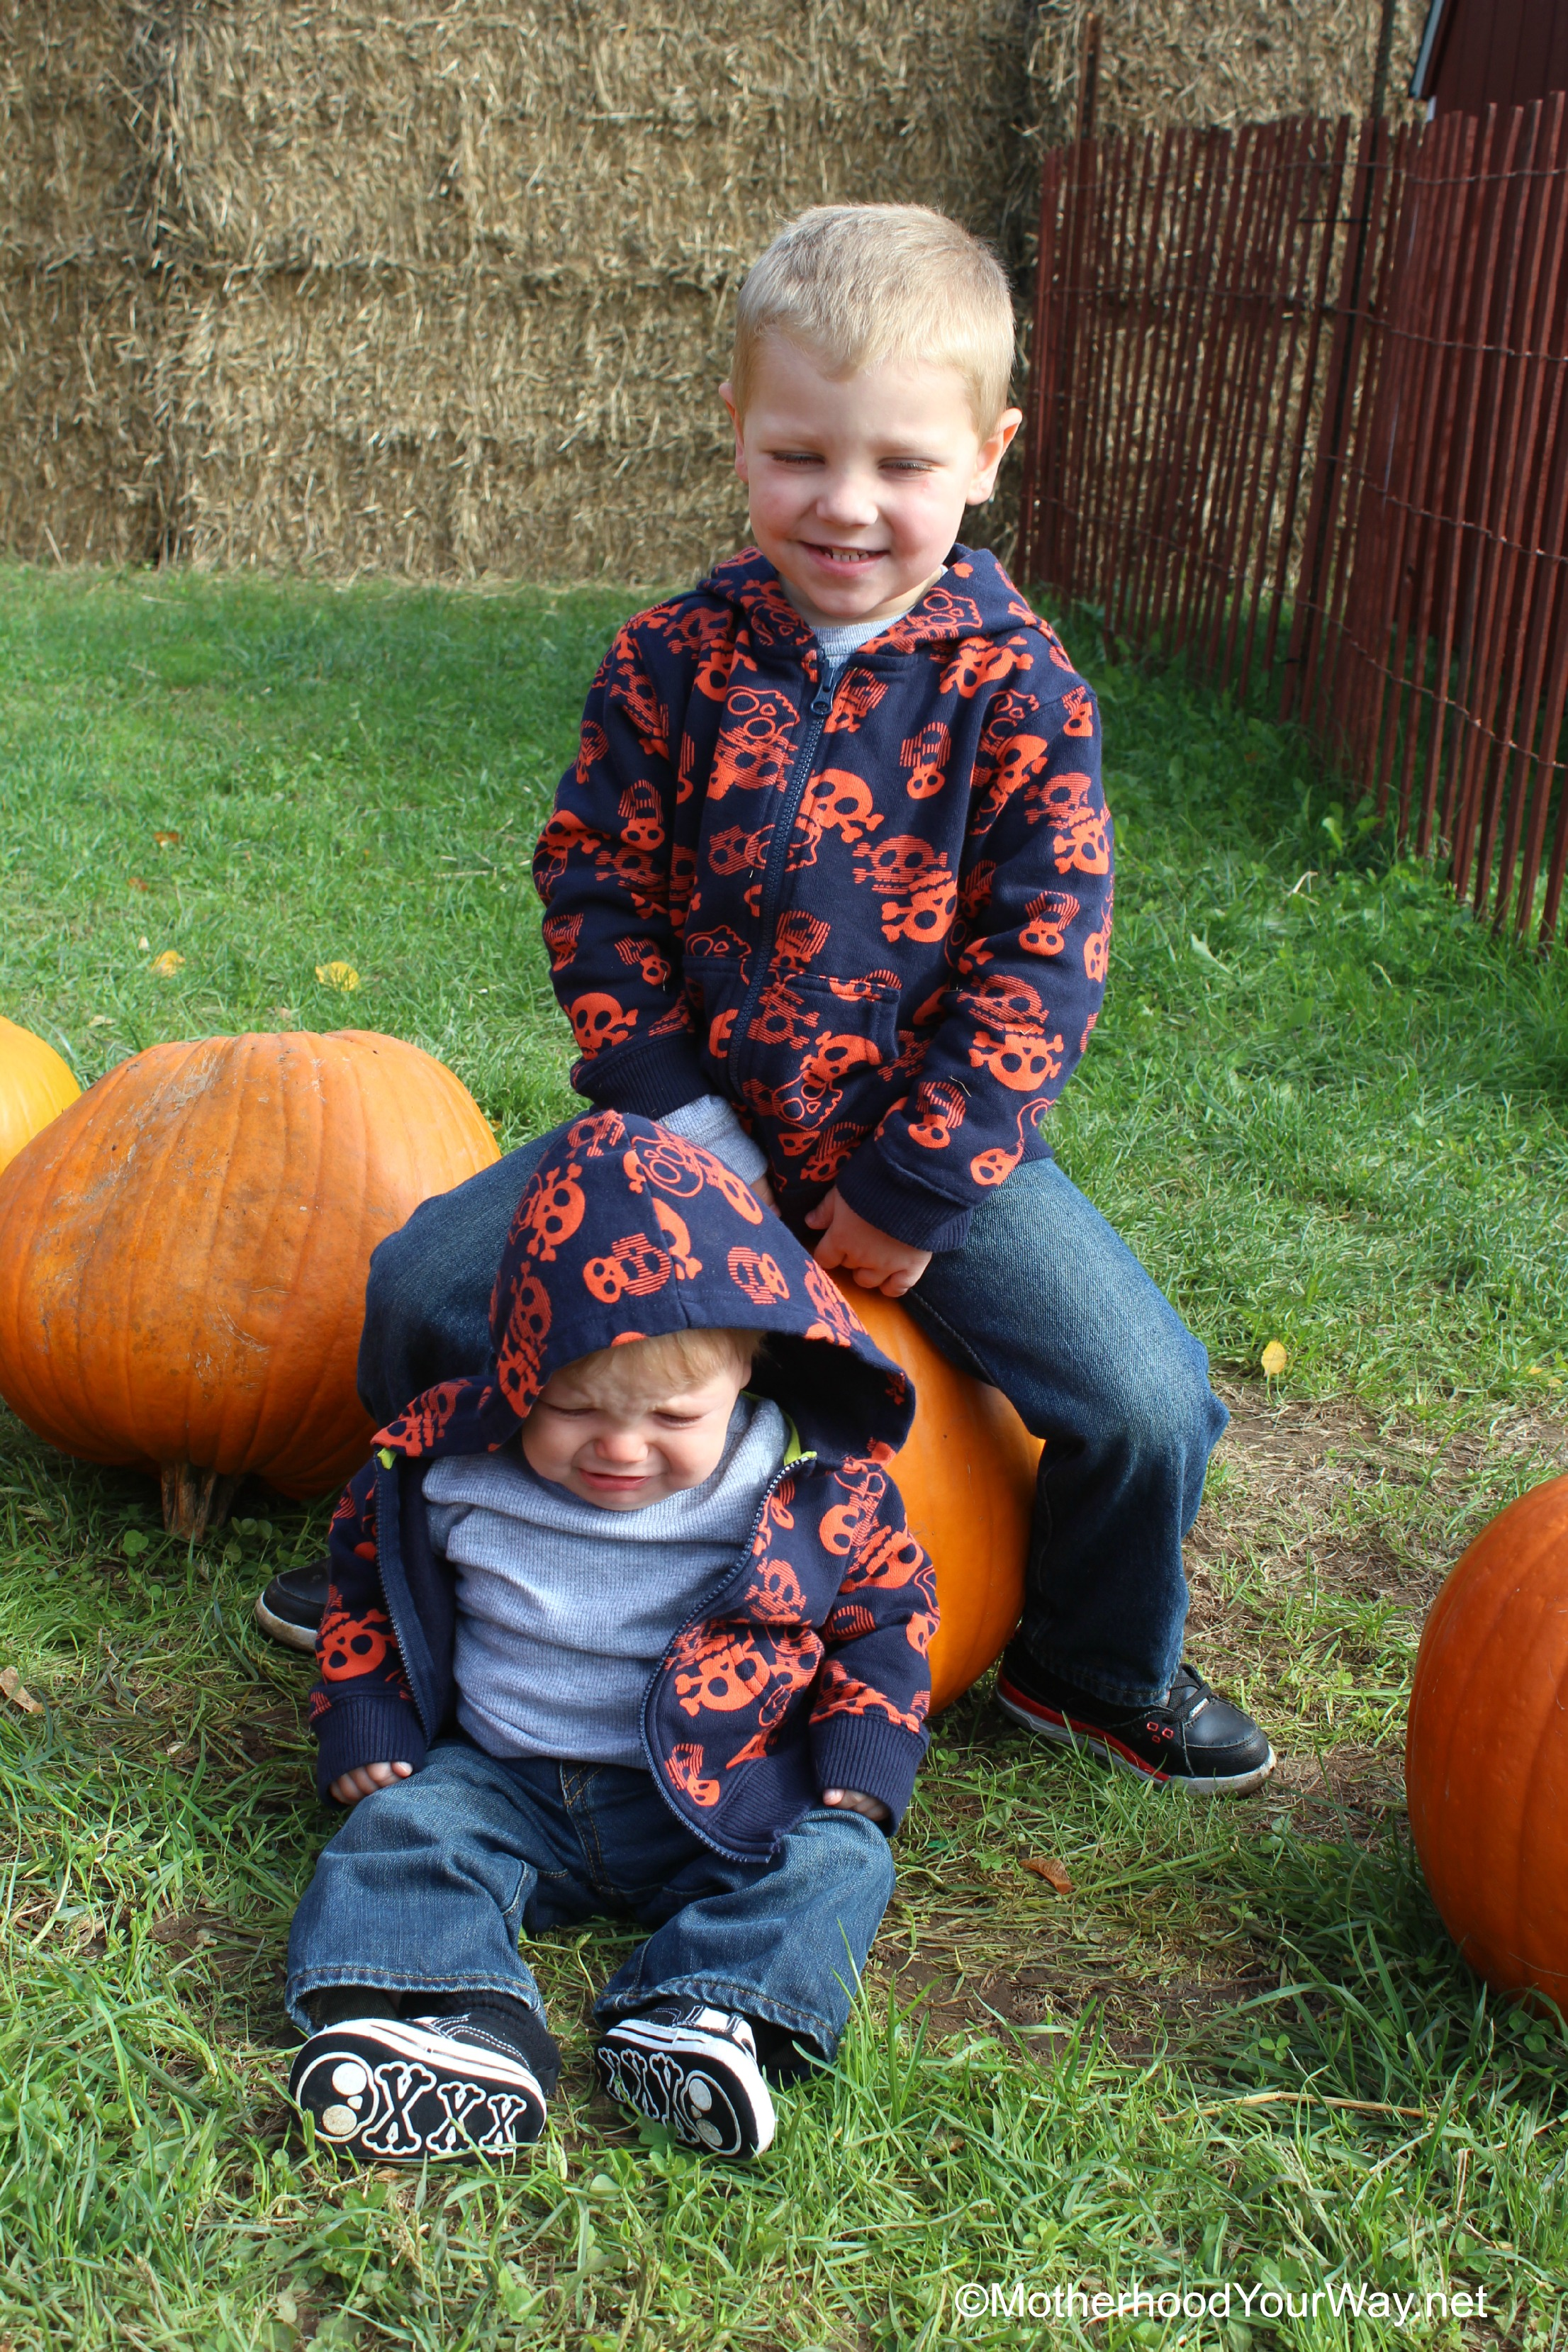 Wordless Wednesday- Unhappy Pumpkins